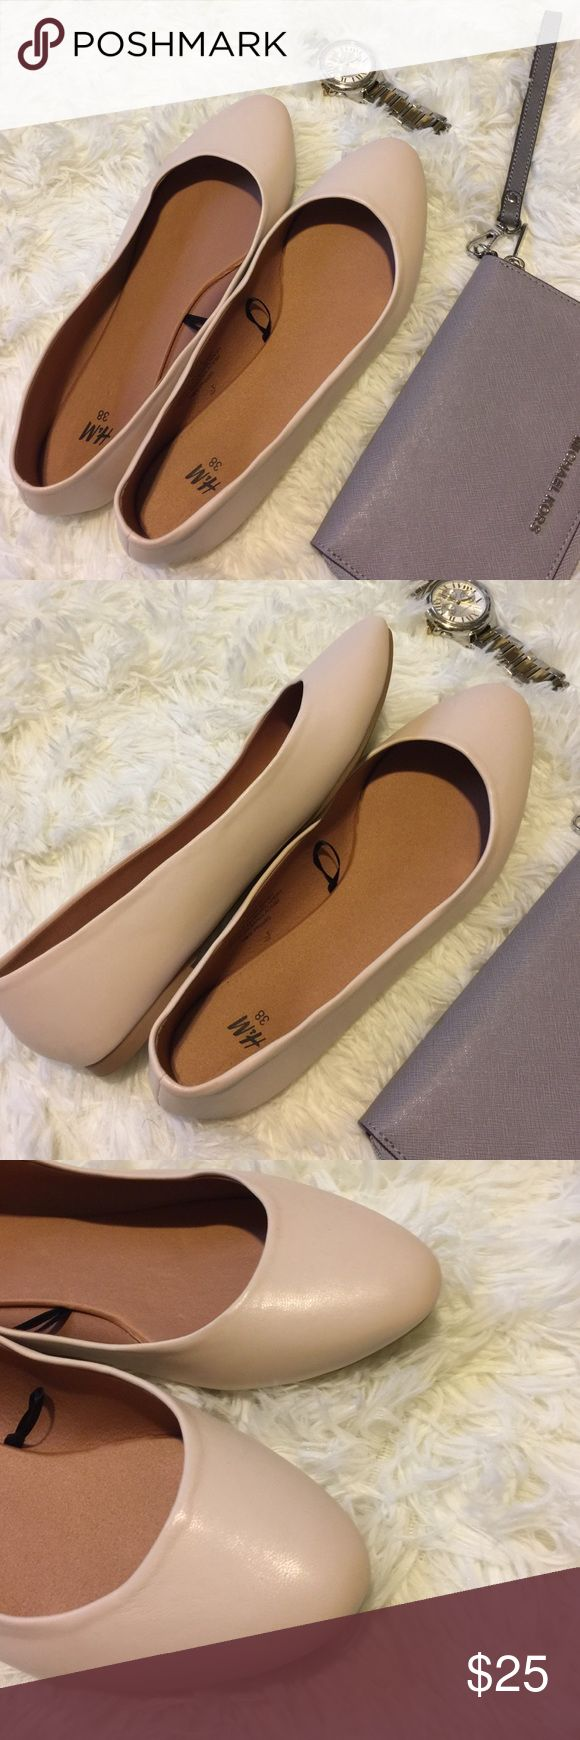 Flats Neutral flats NWOT   ➳ no offsite sales ➵ good vibes only ࿊ use that offer button H&M Shoes Flats & Loafers